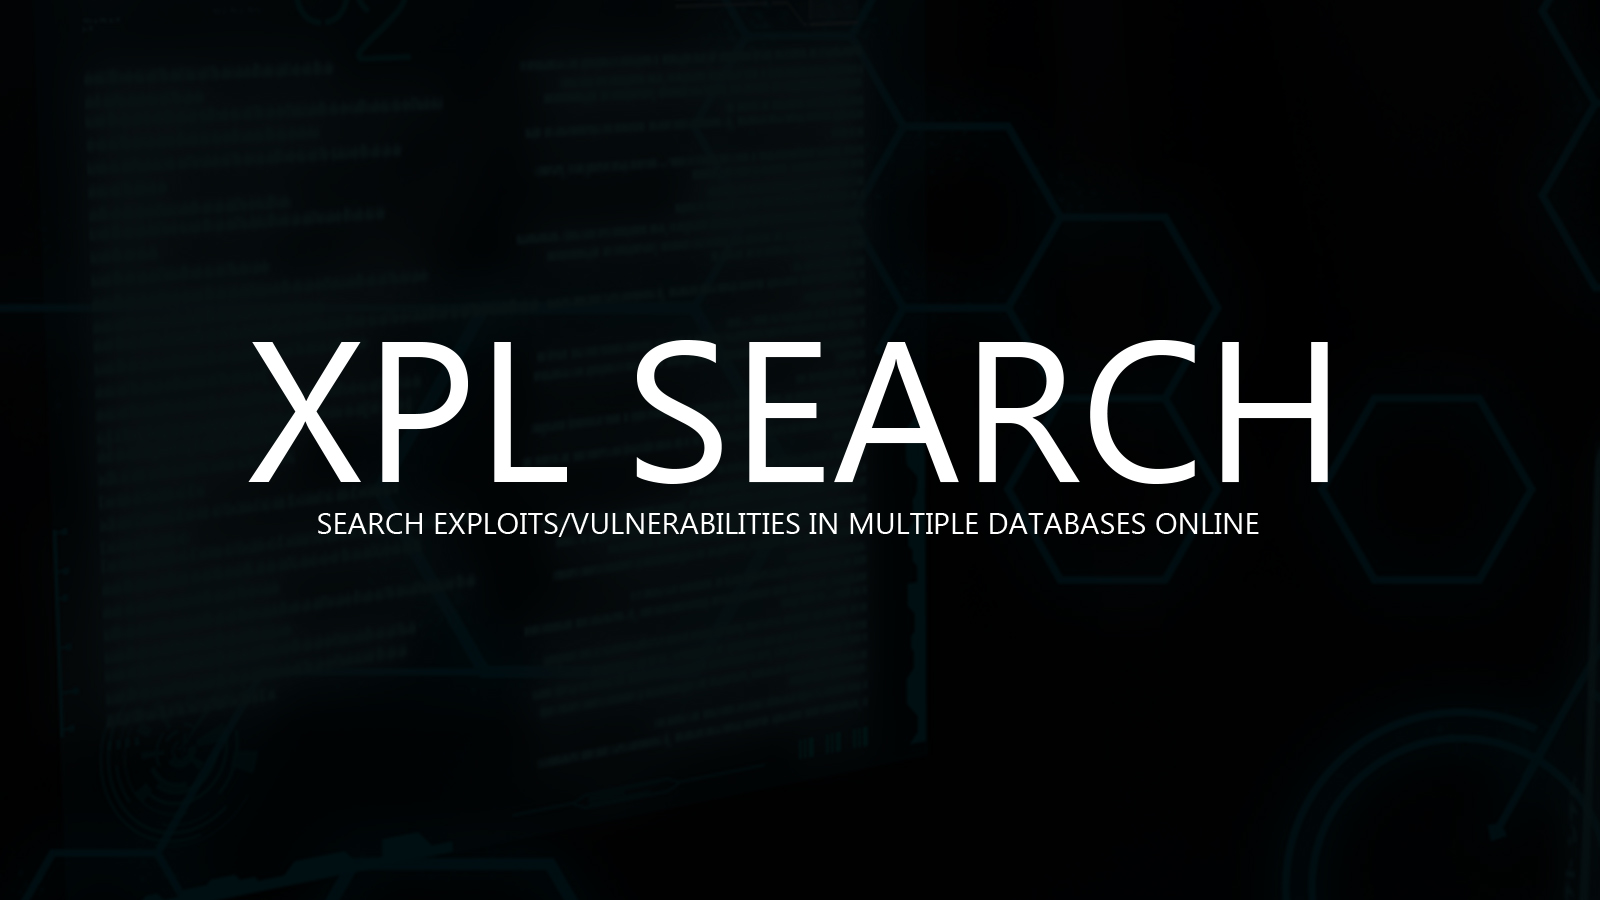 XPL SEARCH - Search Exploits/Vulnerabilities In Multiple Databases Online